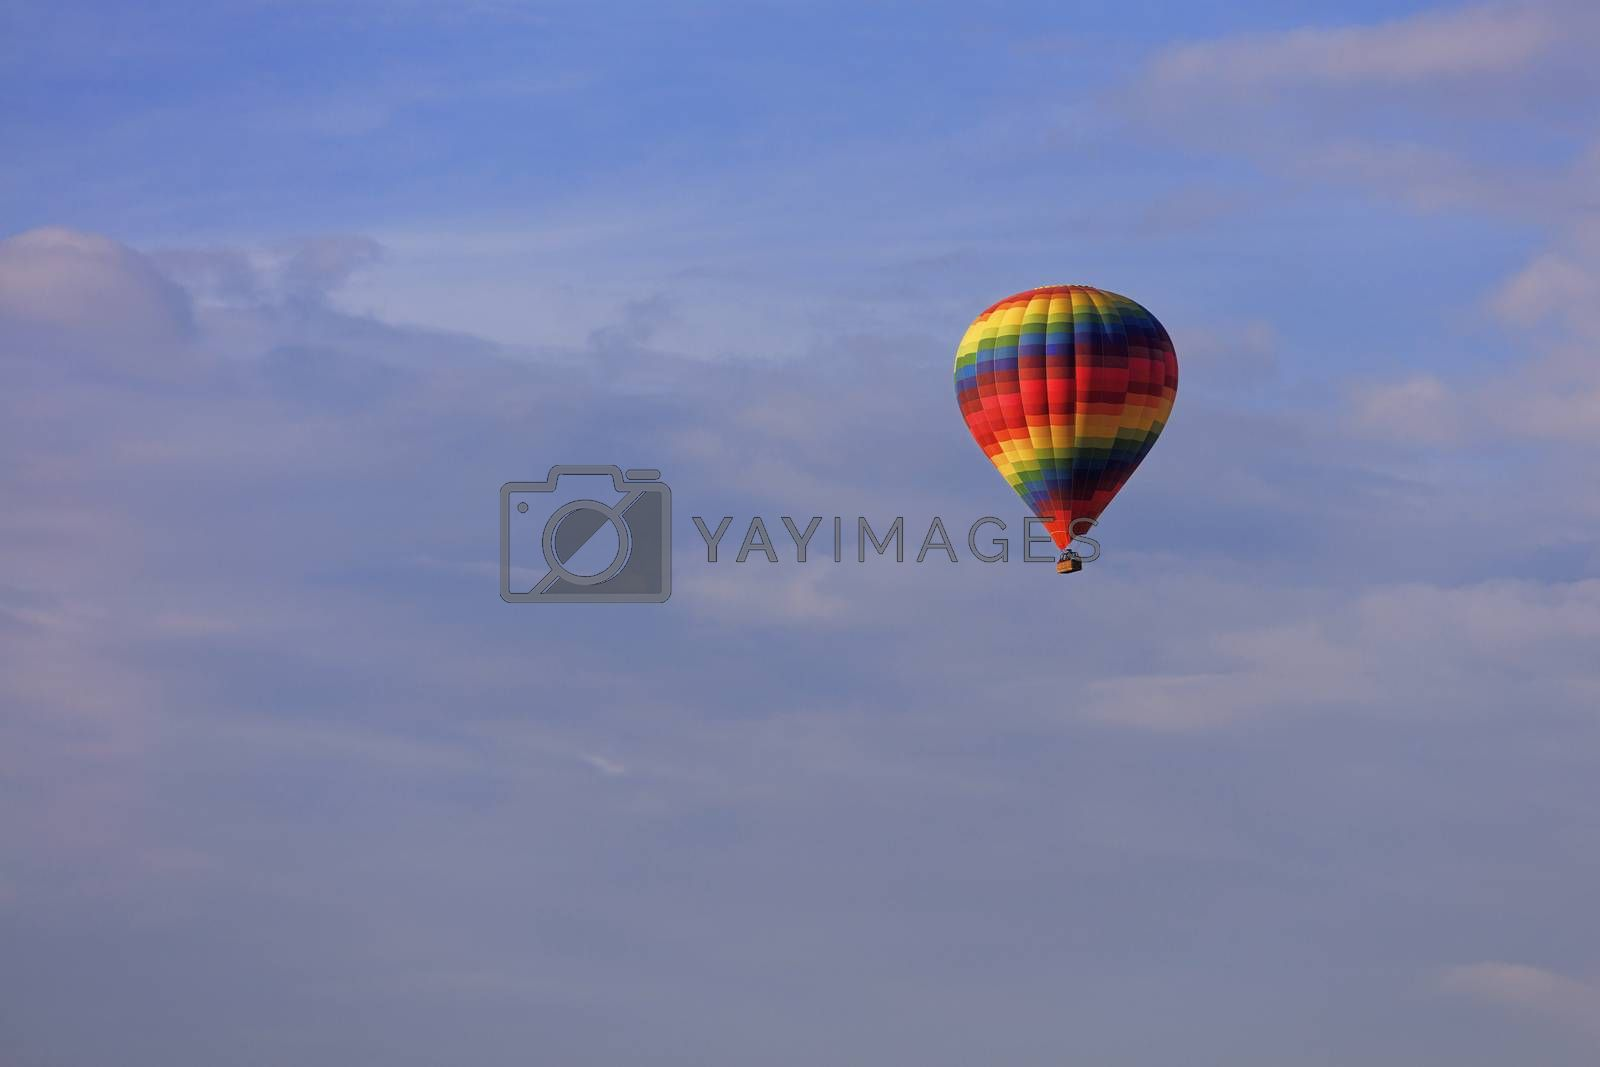 A motley multicolored beautiful balloon raises the tourist's basket to the blue sky under the sun rays among the clouds.